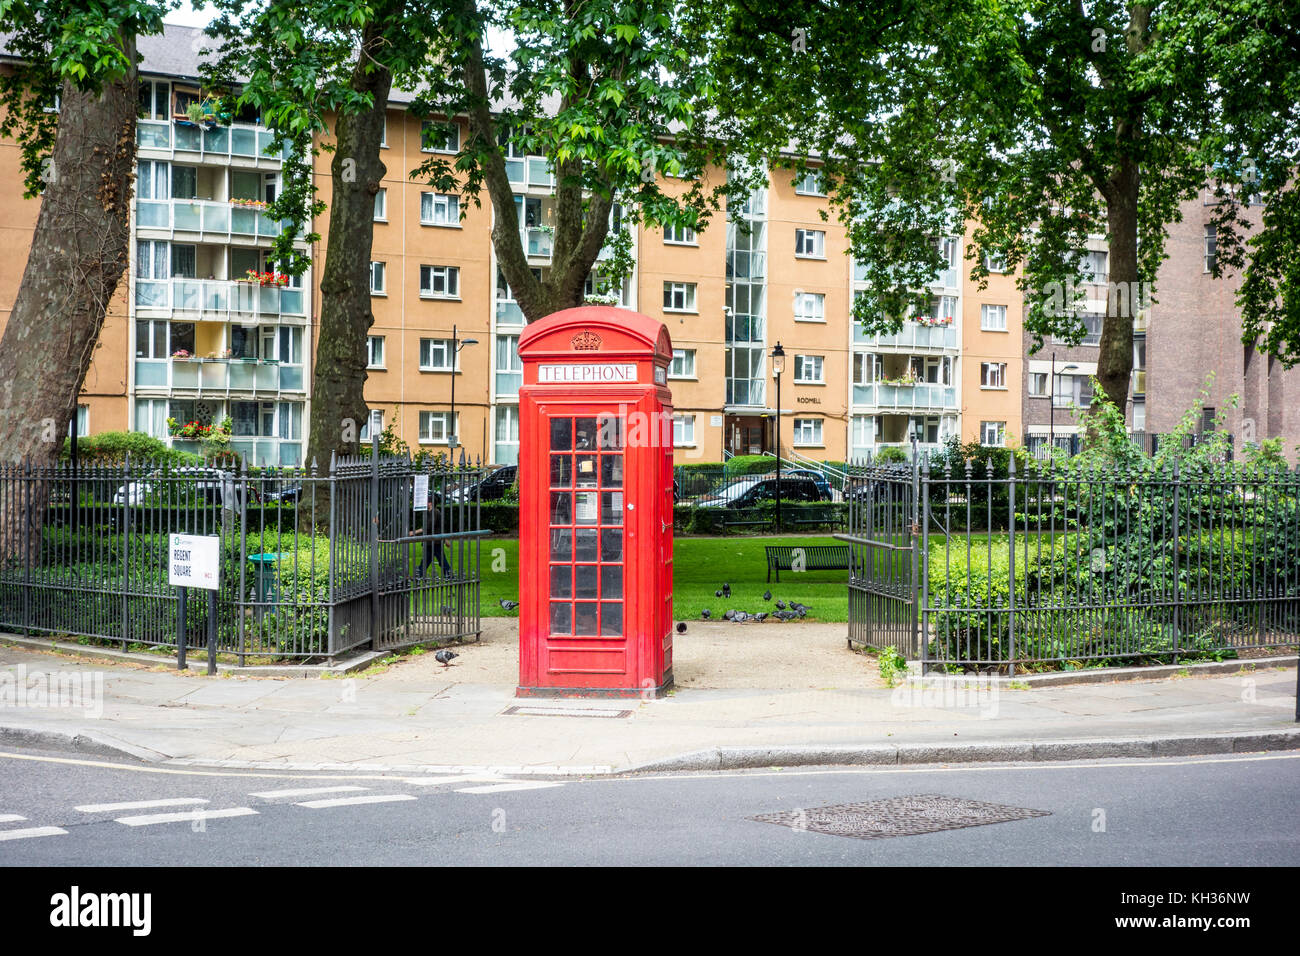 K2 red telephone box phone box in Regent Square Gardens, London, UK - Stock Image